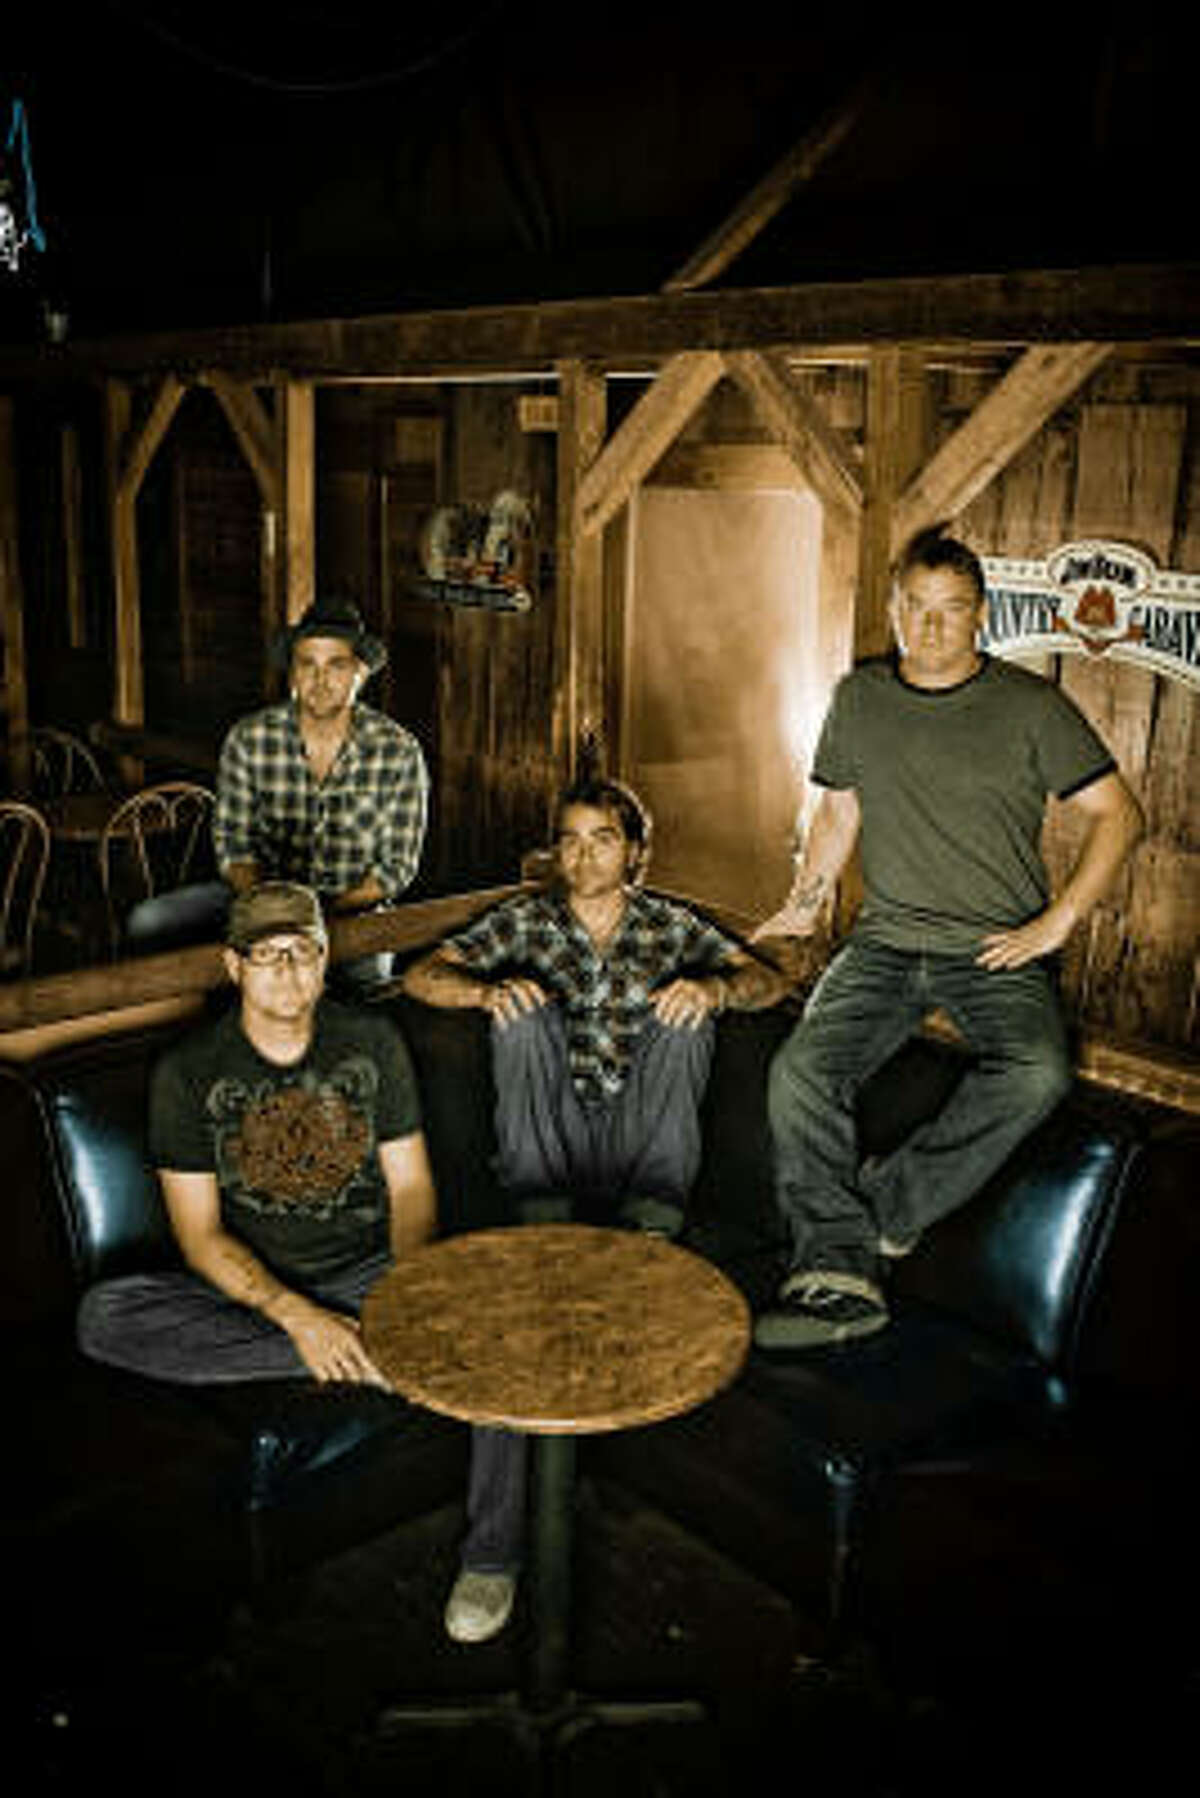 The boys from Stillwater, Okla., take over the House of Blues on New Year's Eve.